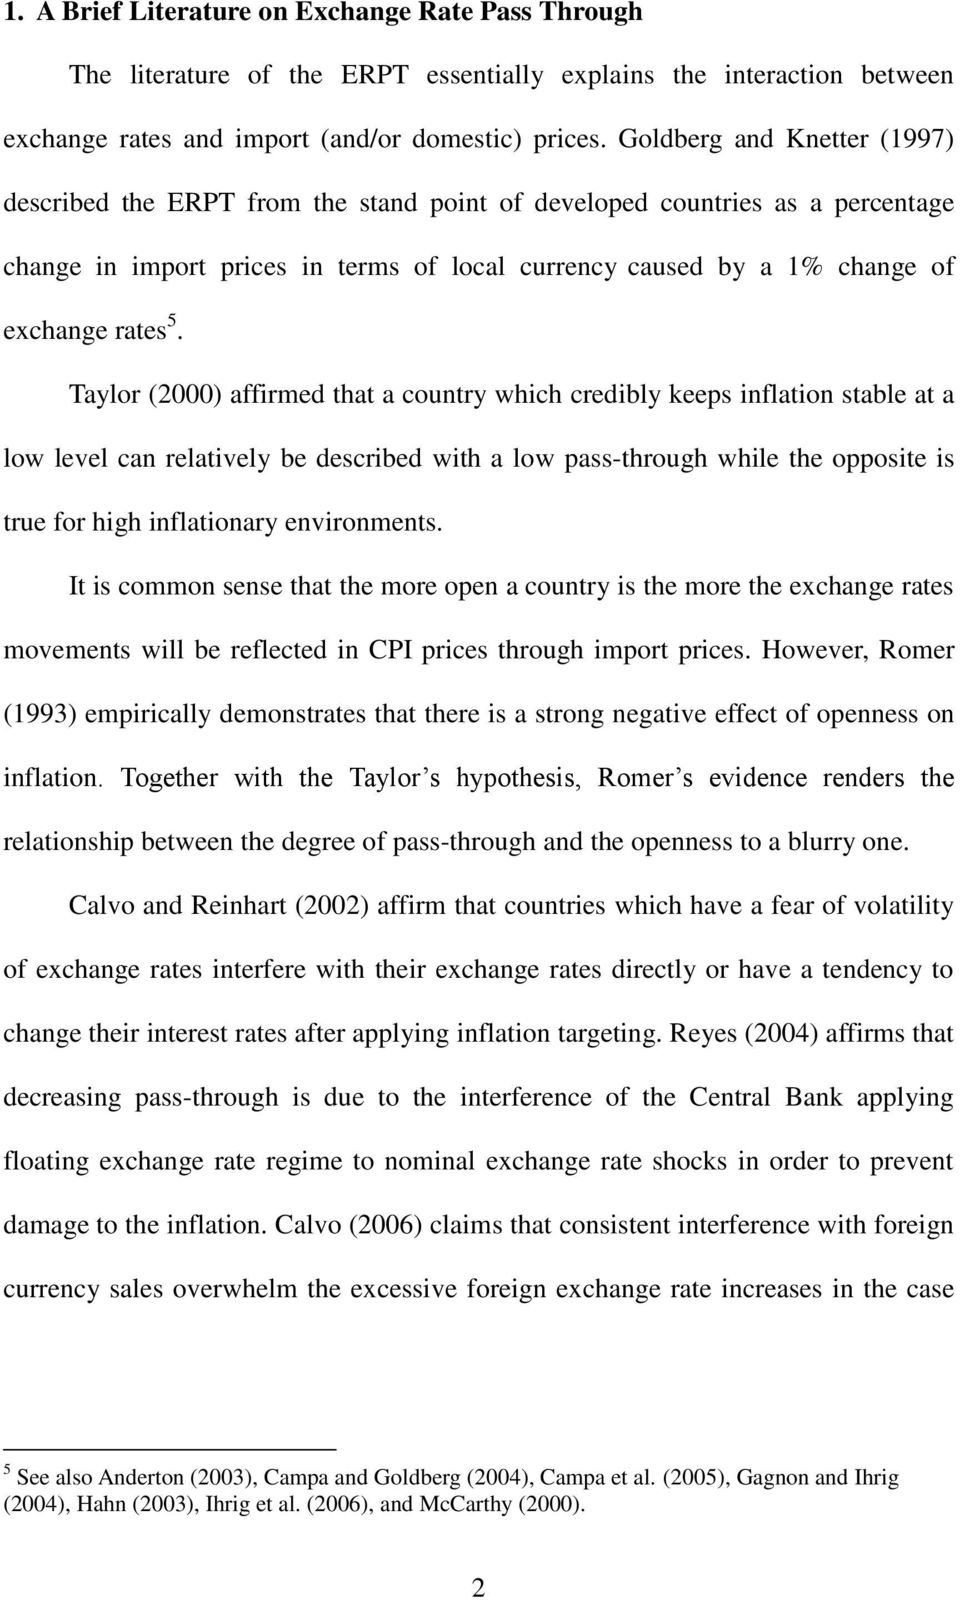 Taylor (2000) affirmed that a country which credibly keeps inflation stable at a low level can relatively be described with a low pass-through while the opposite is true for high inflationary